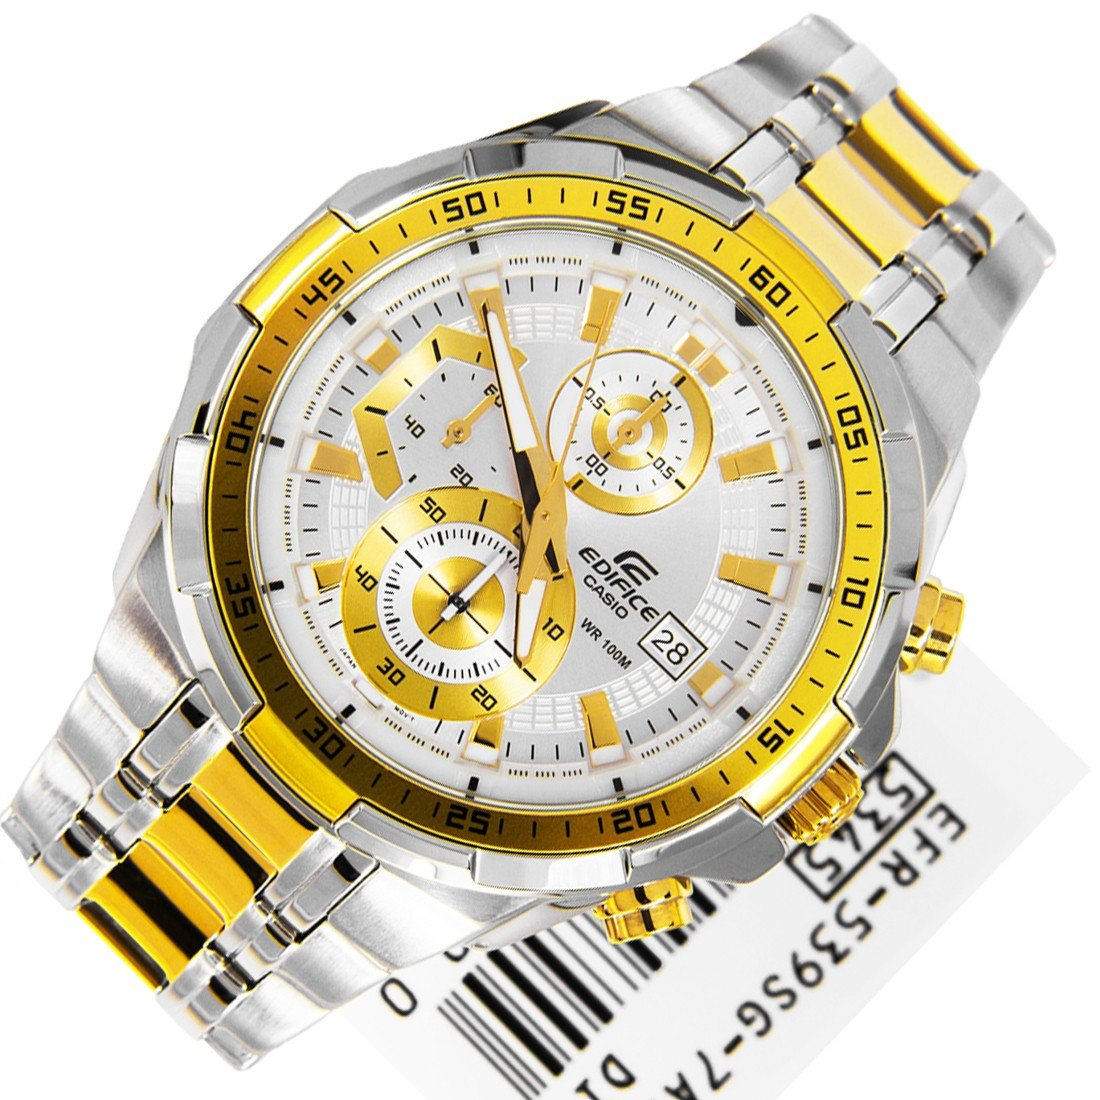 Casio Edifice EFR-539SG-7A Chronograph Stainless Steel Size 50mm Dial Color White